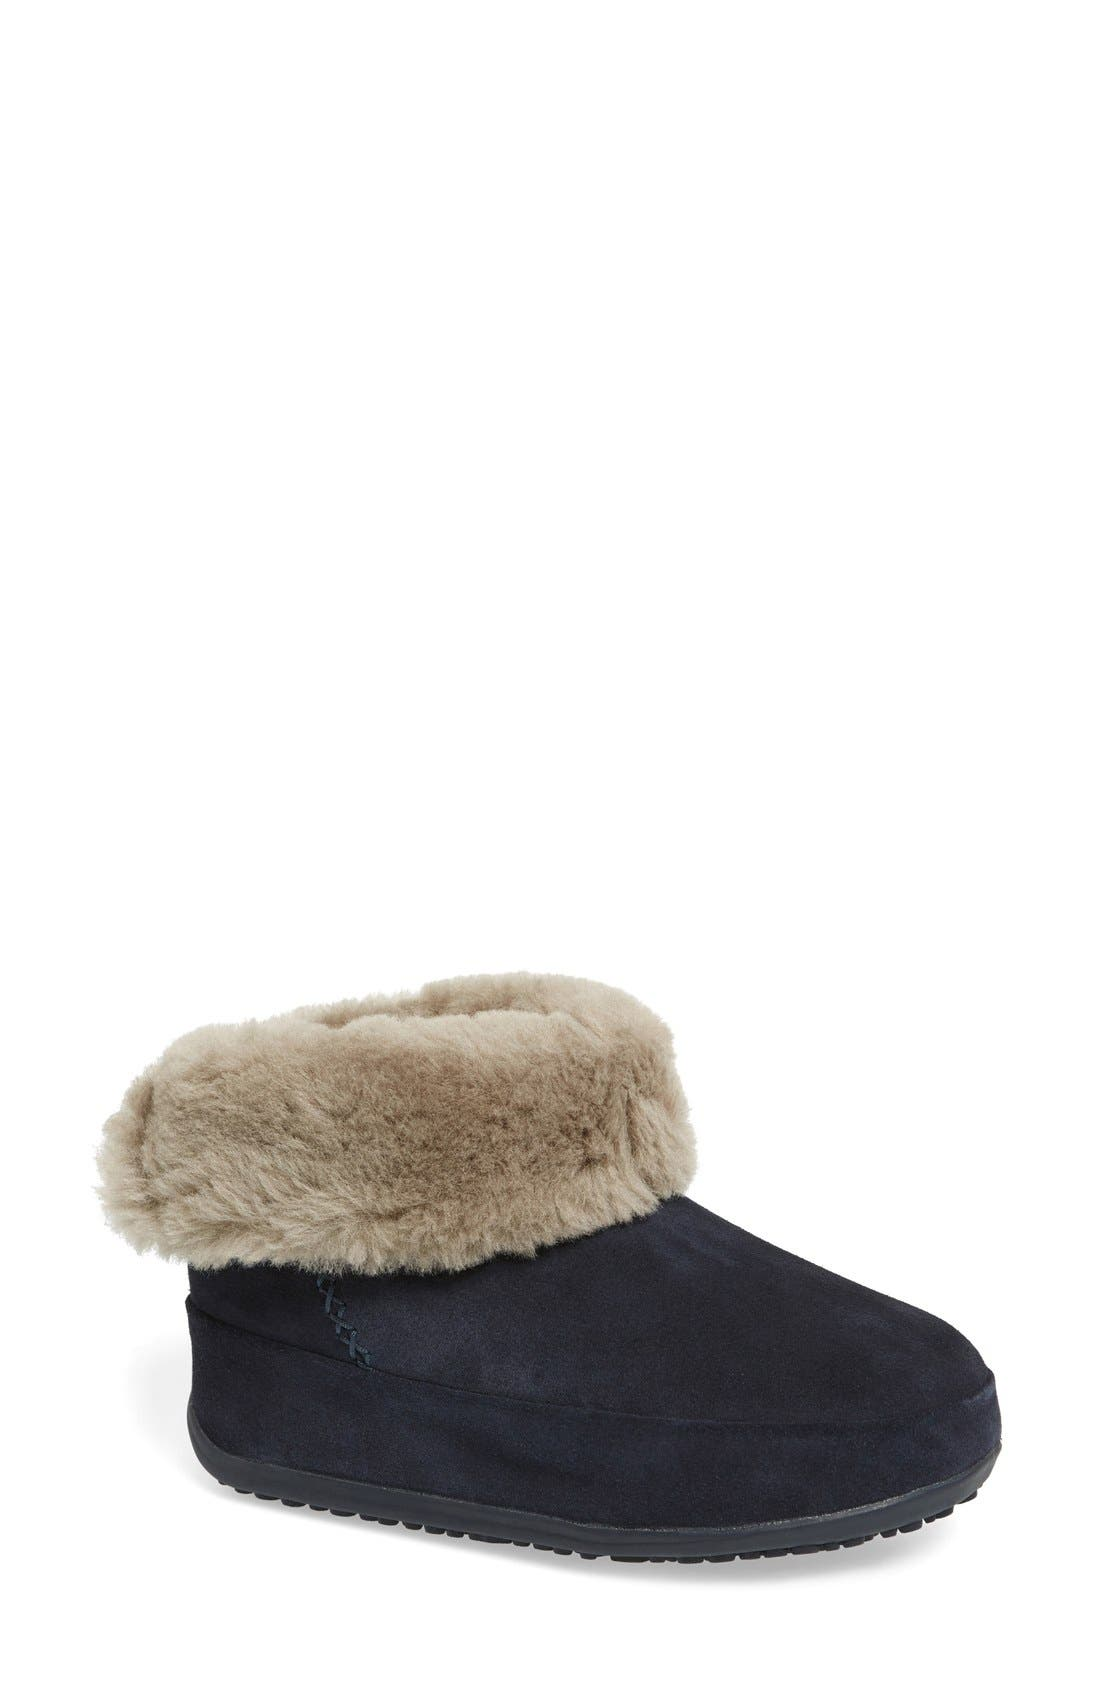 Main Image - FitFlop™'Shorty' Shearling Lined Boot (Women)